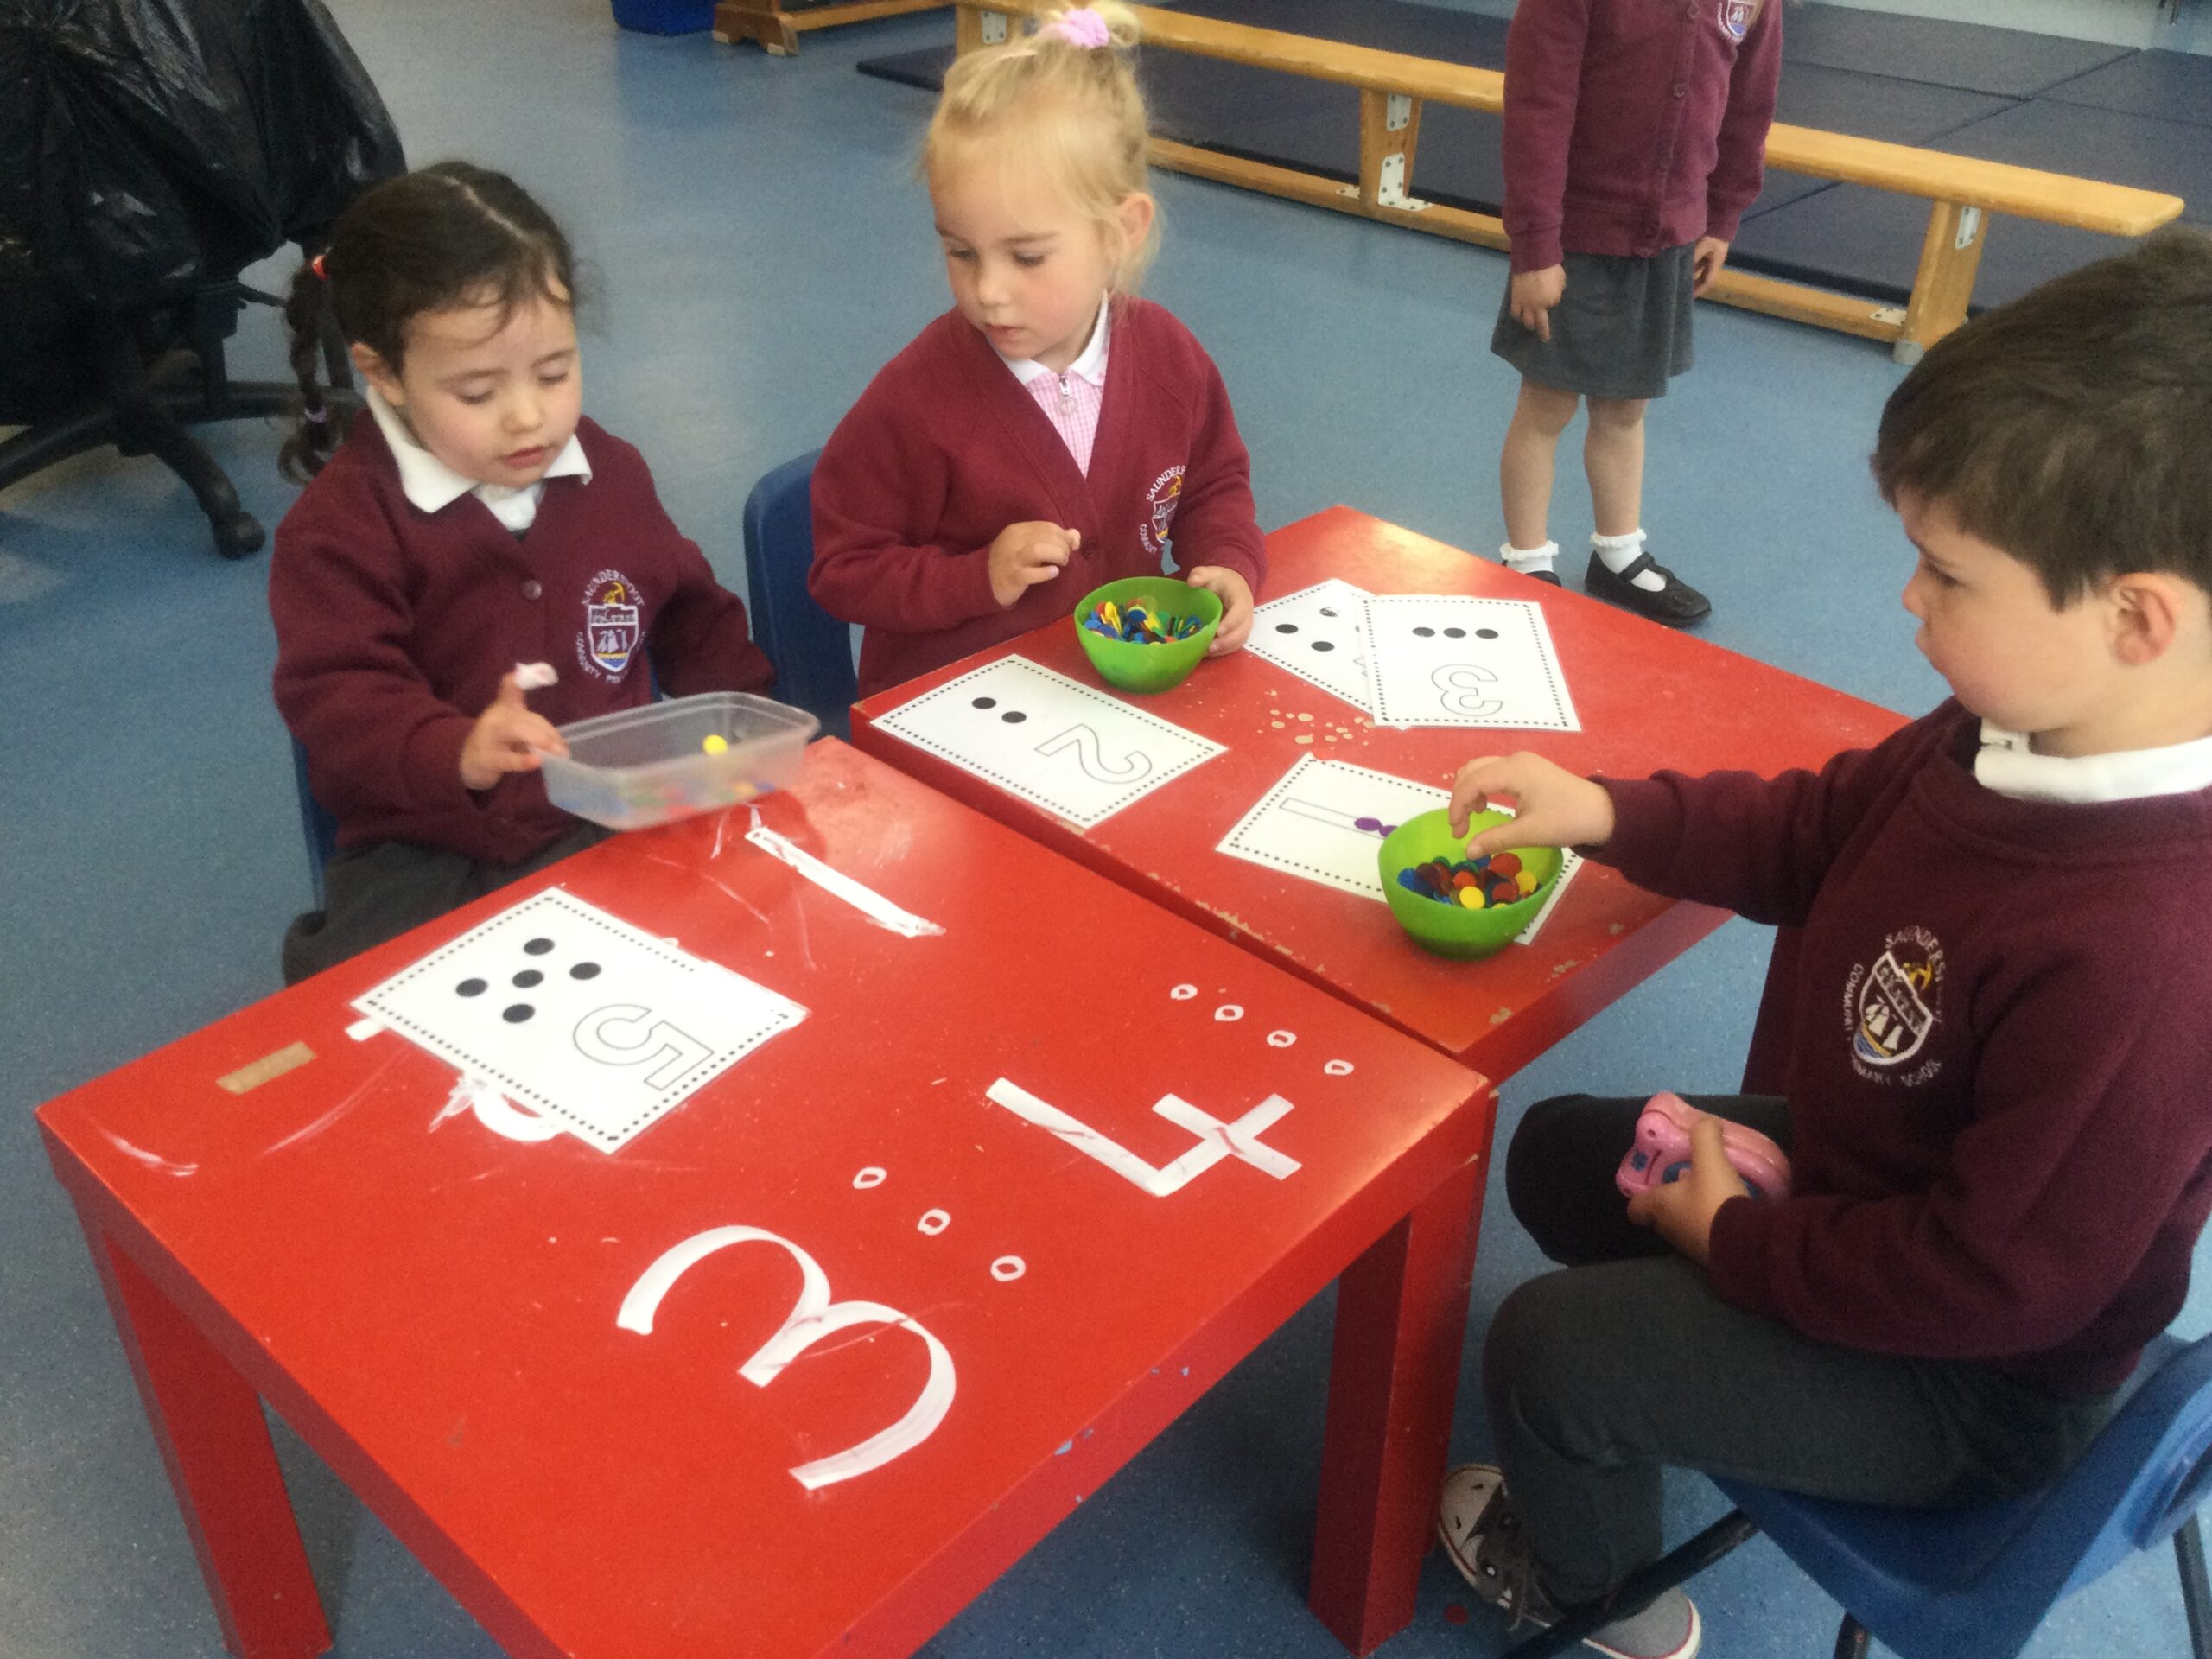 Using our Mathematical Skills!